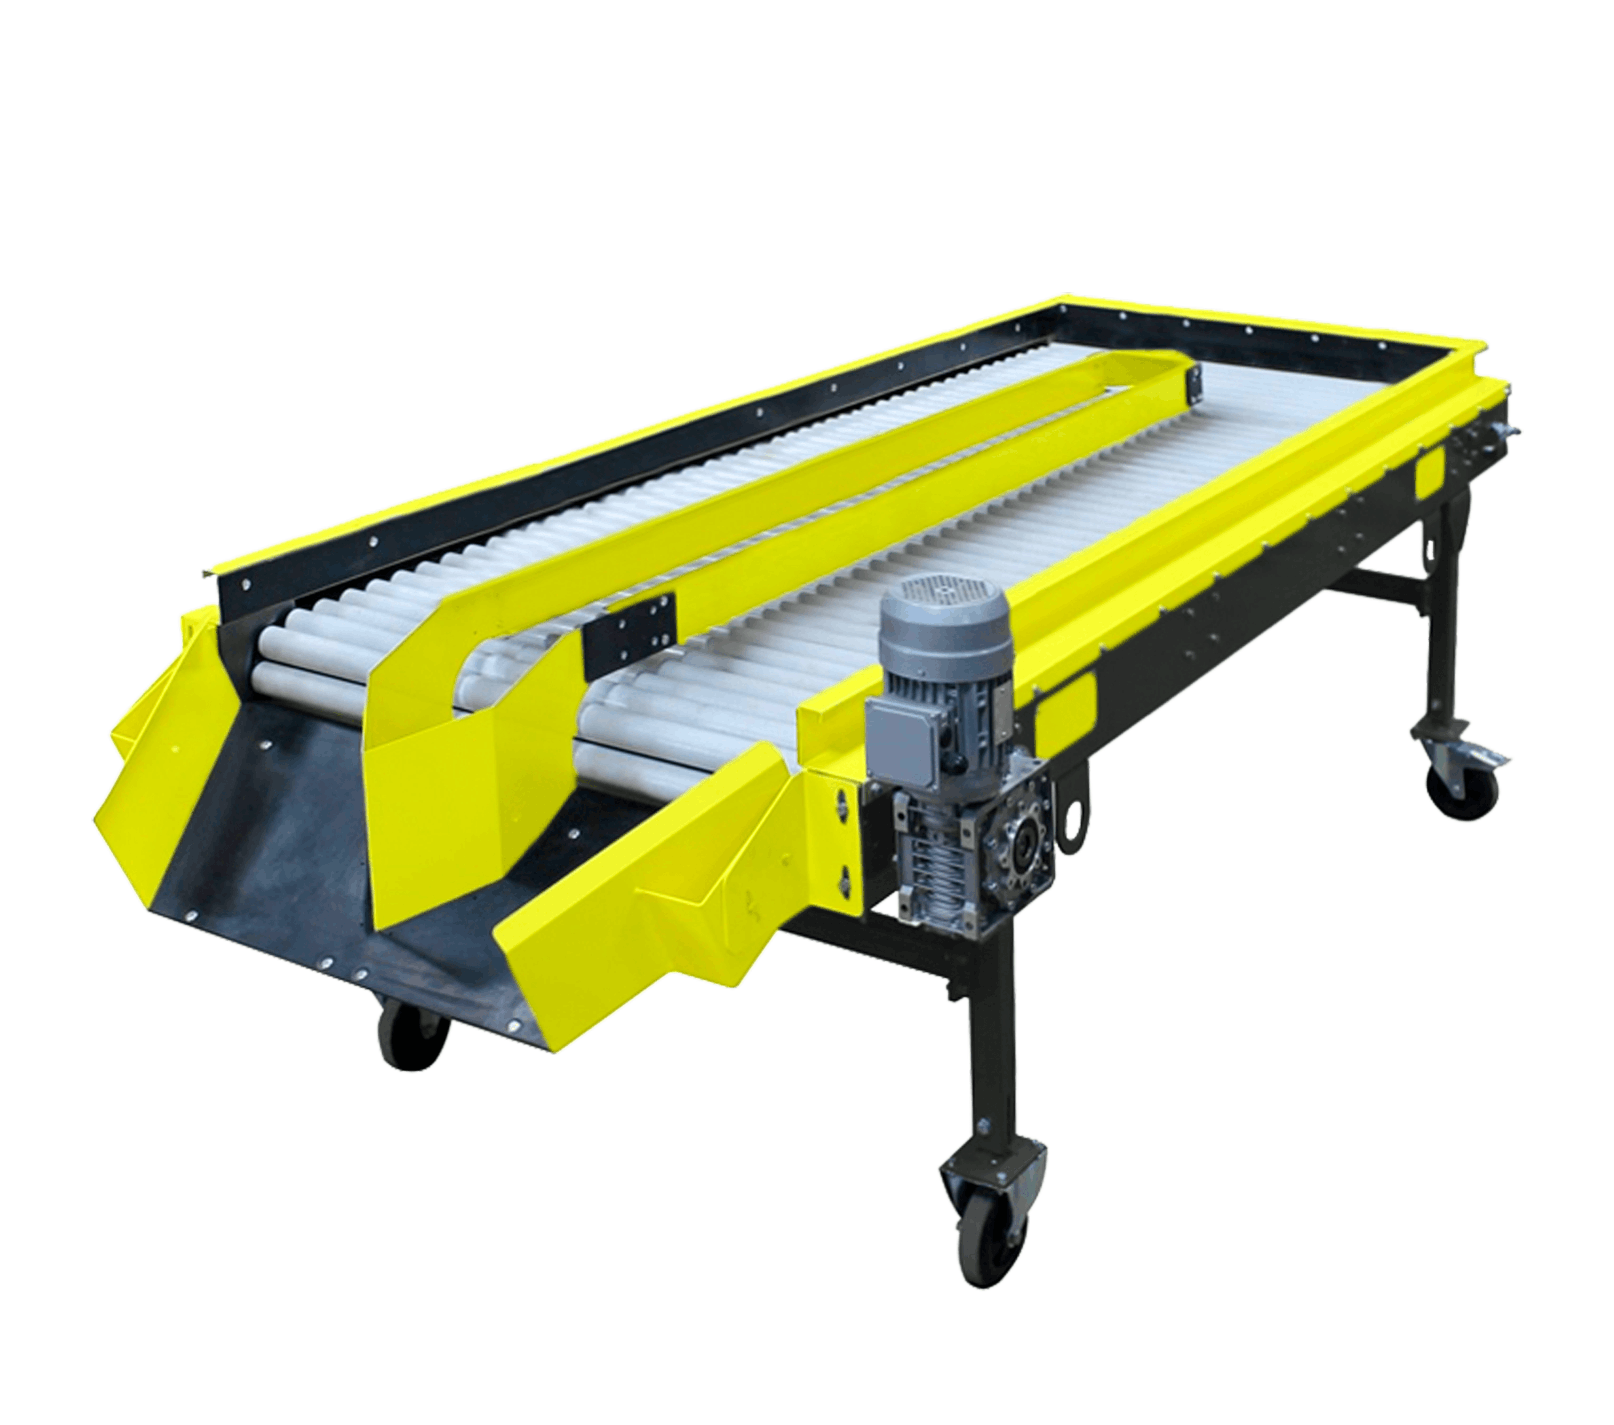 Inspection roller table